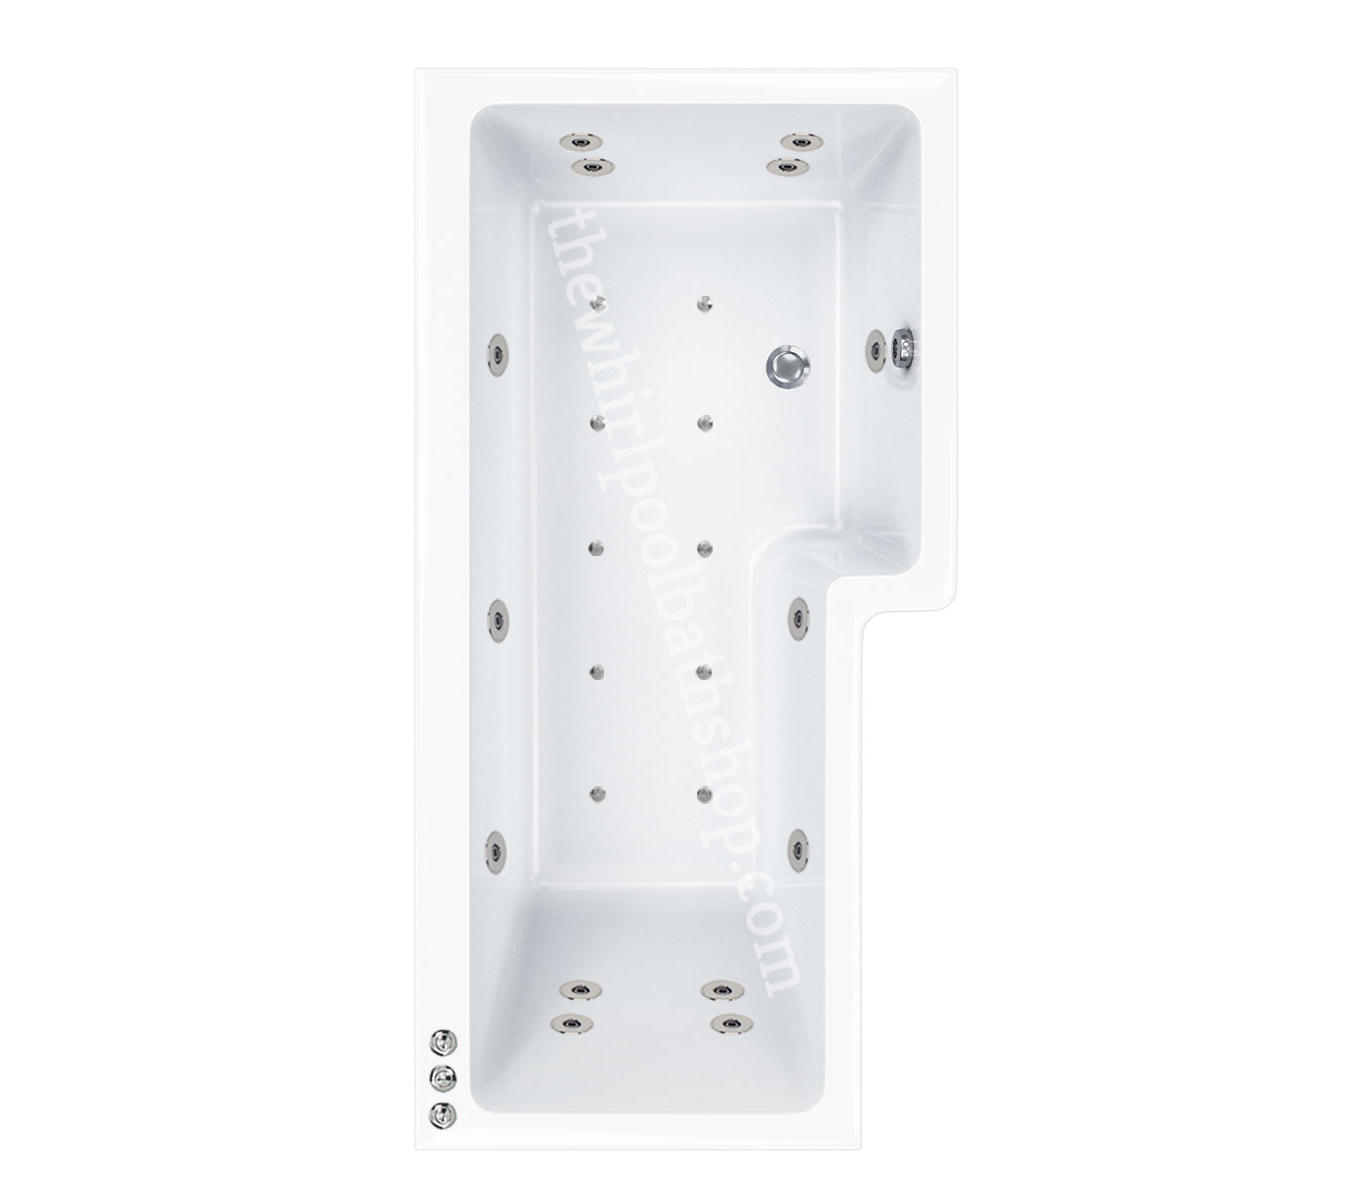 24 jet RH Carron 1700 mm Quantum L Shape Whirlpool Shower Bath